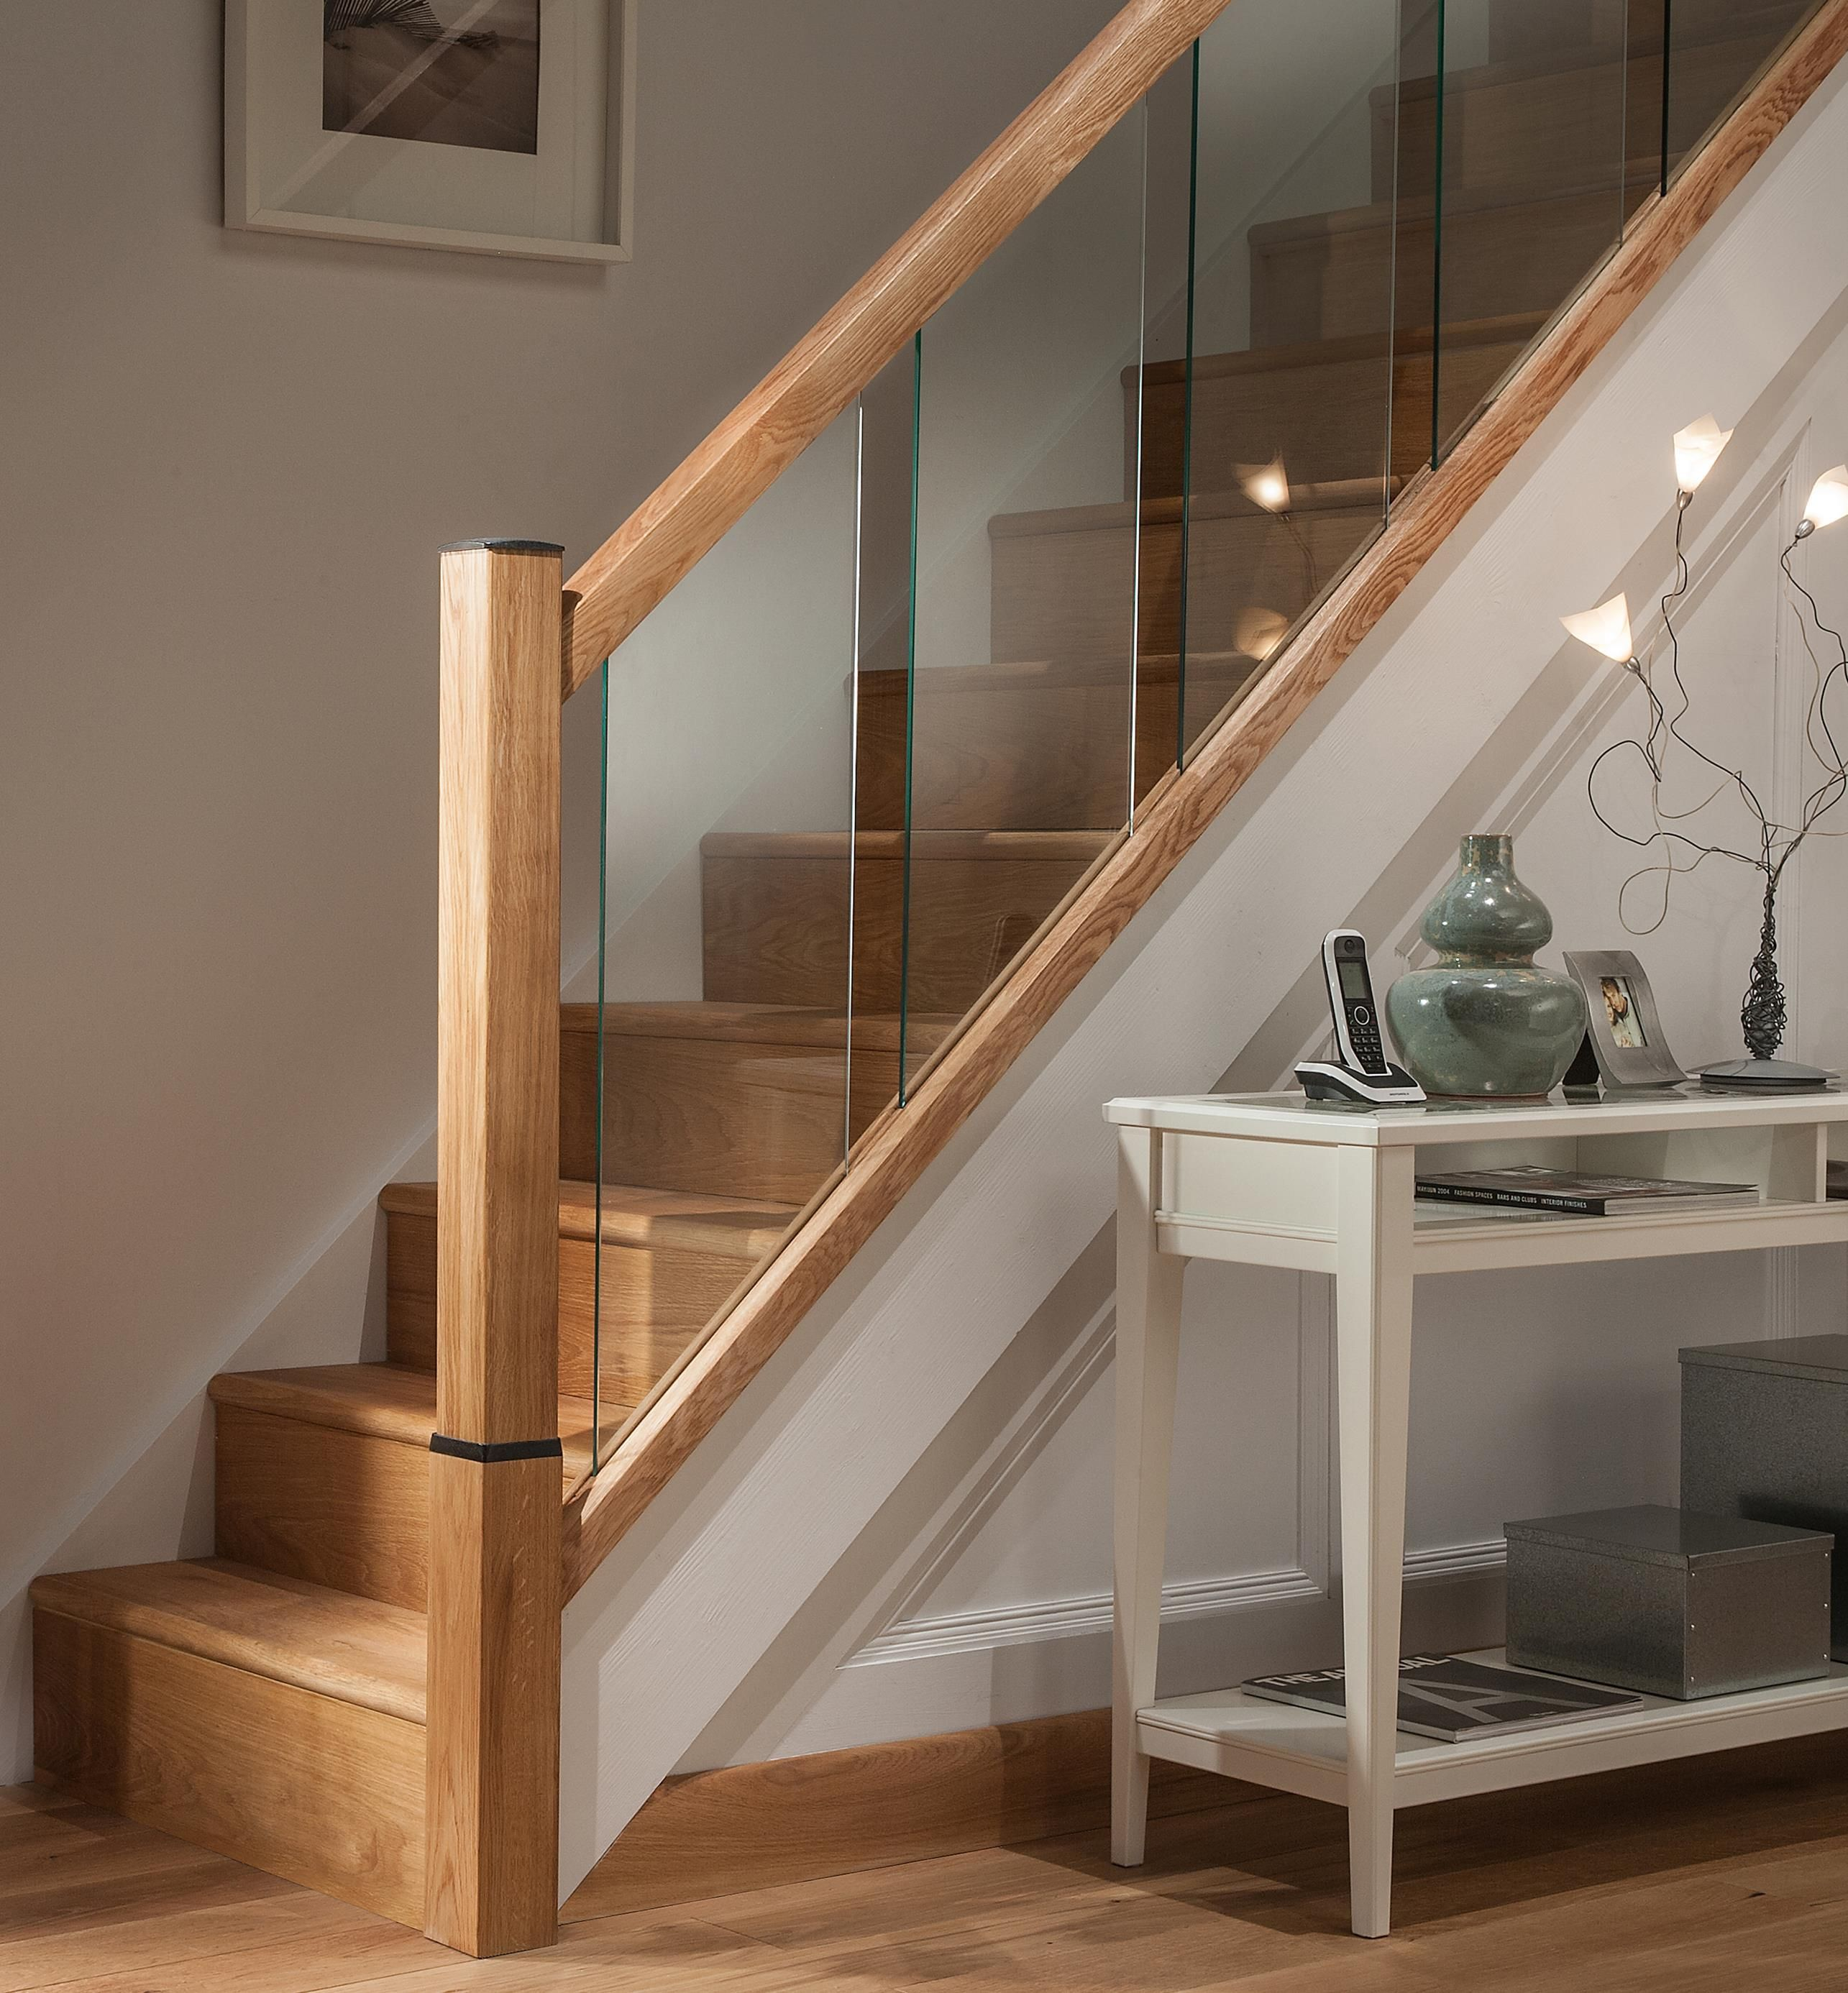 Reflections Glass Balustrade Is A Range Of Interior Staircase Products That  Make It Simple And Easy